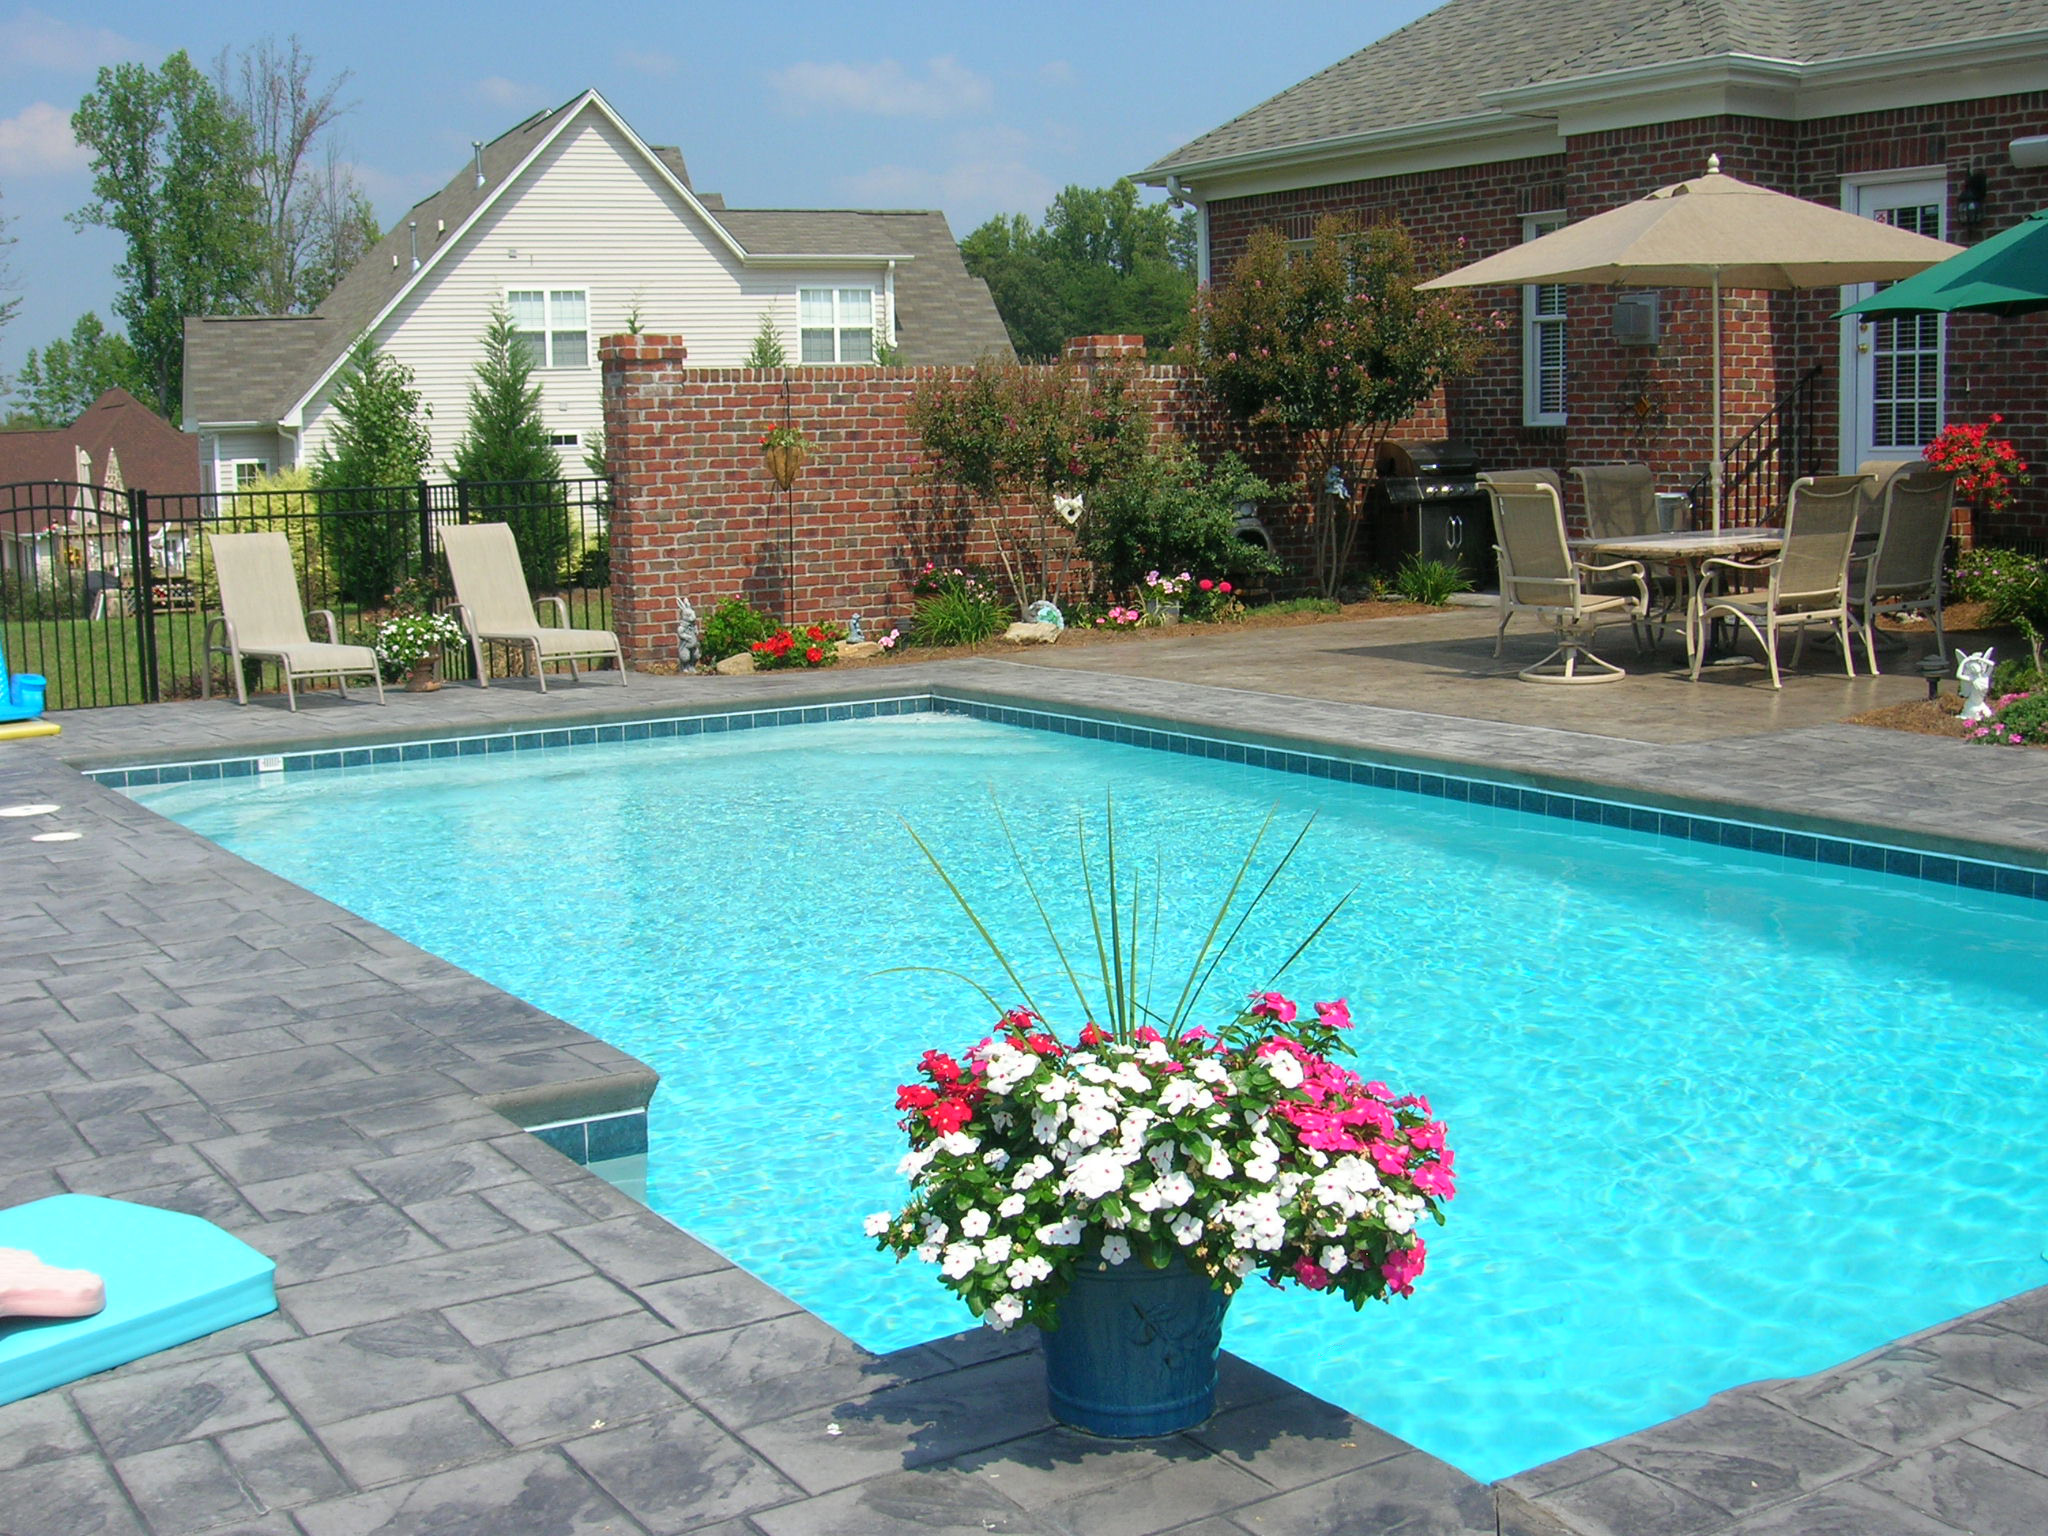 1 - Swimming Pool with Stamped Concrete Pool Deck.JPG